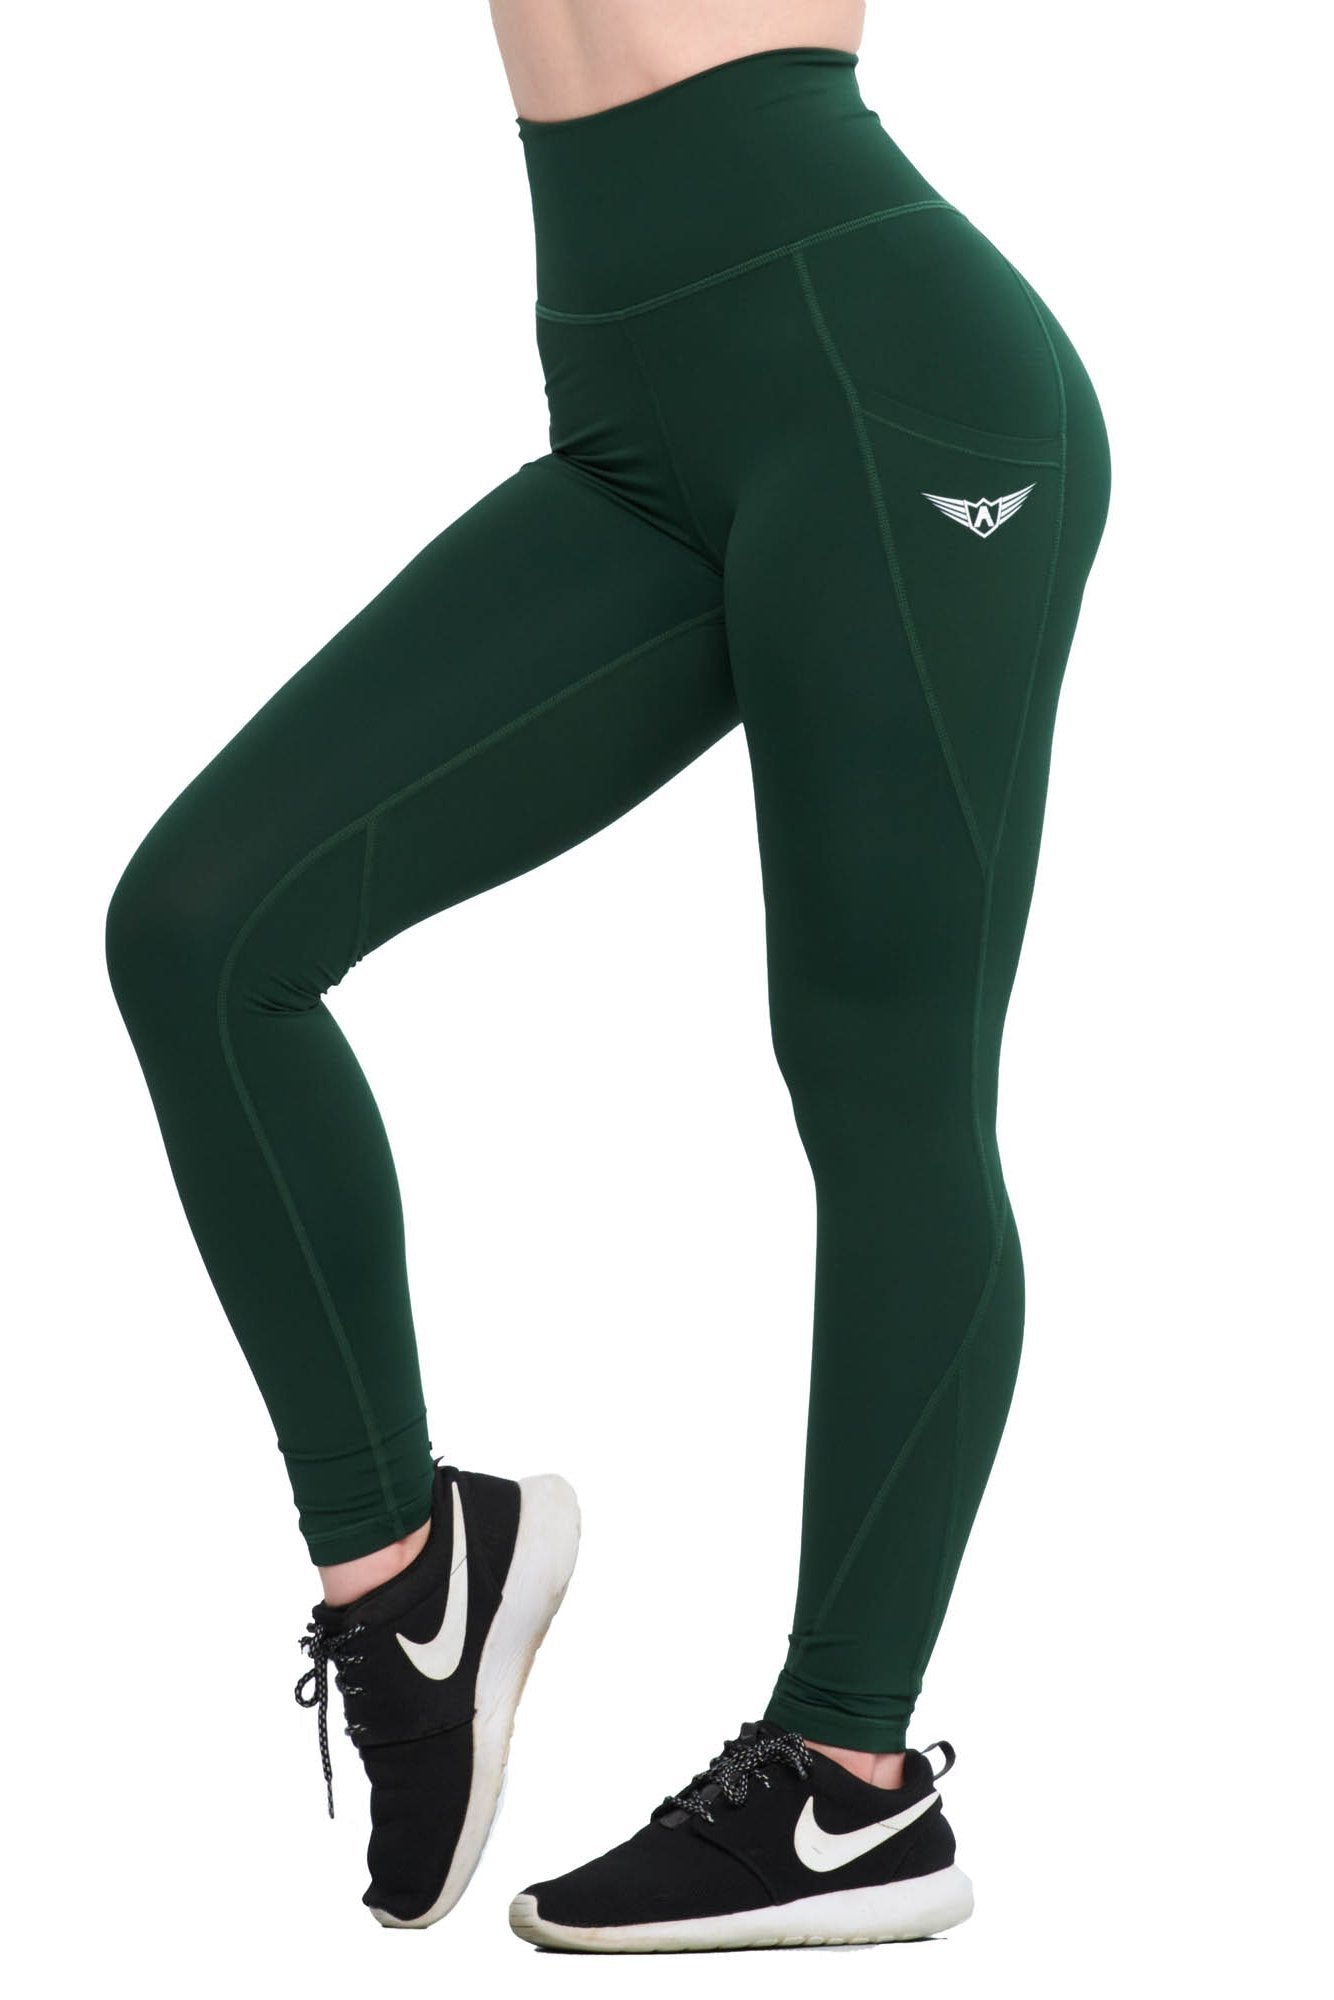 fb5e567b129b0 FOREST GREEN COMPRESSION LEGGINGS WITH POCKETS - womens activewear leggings